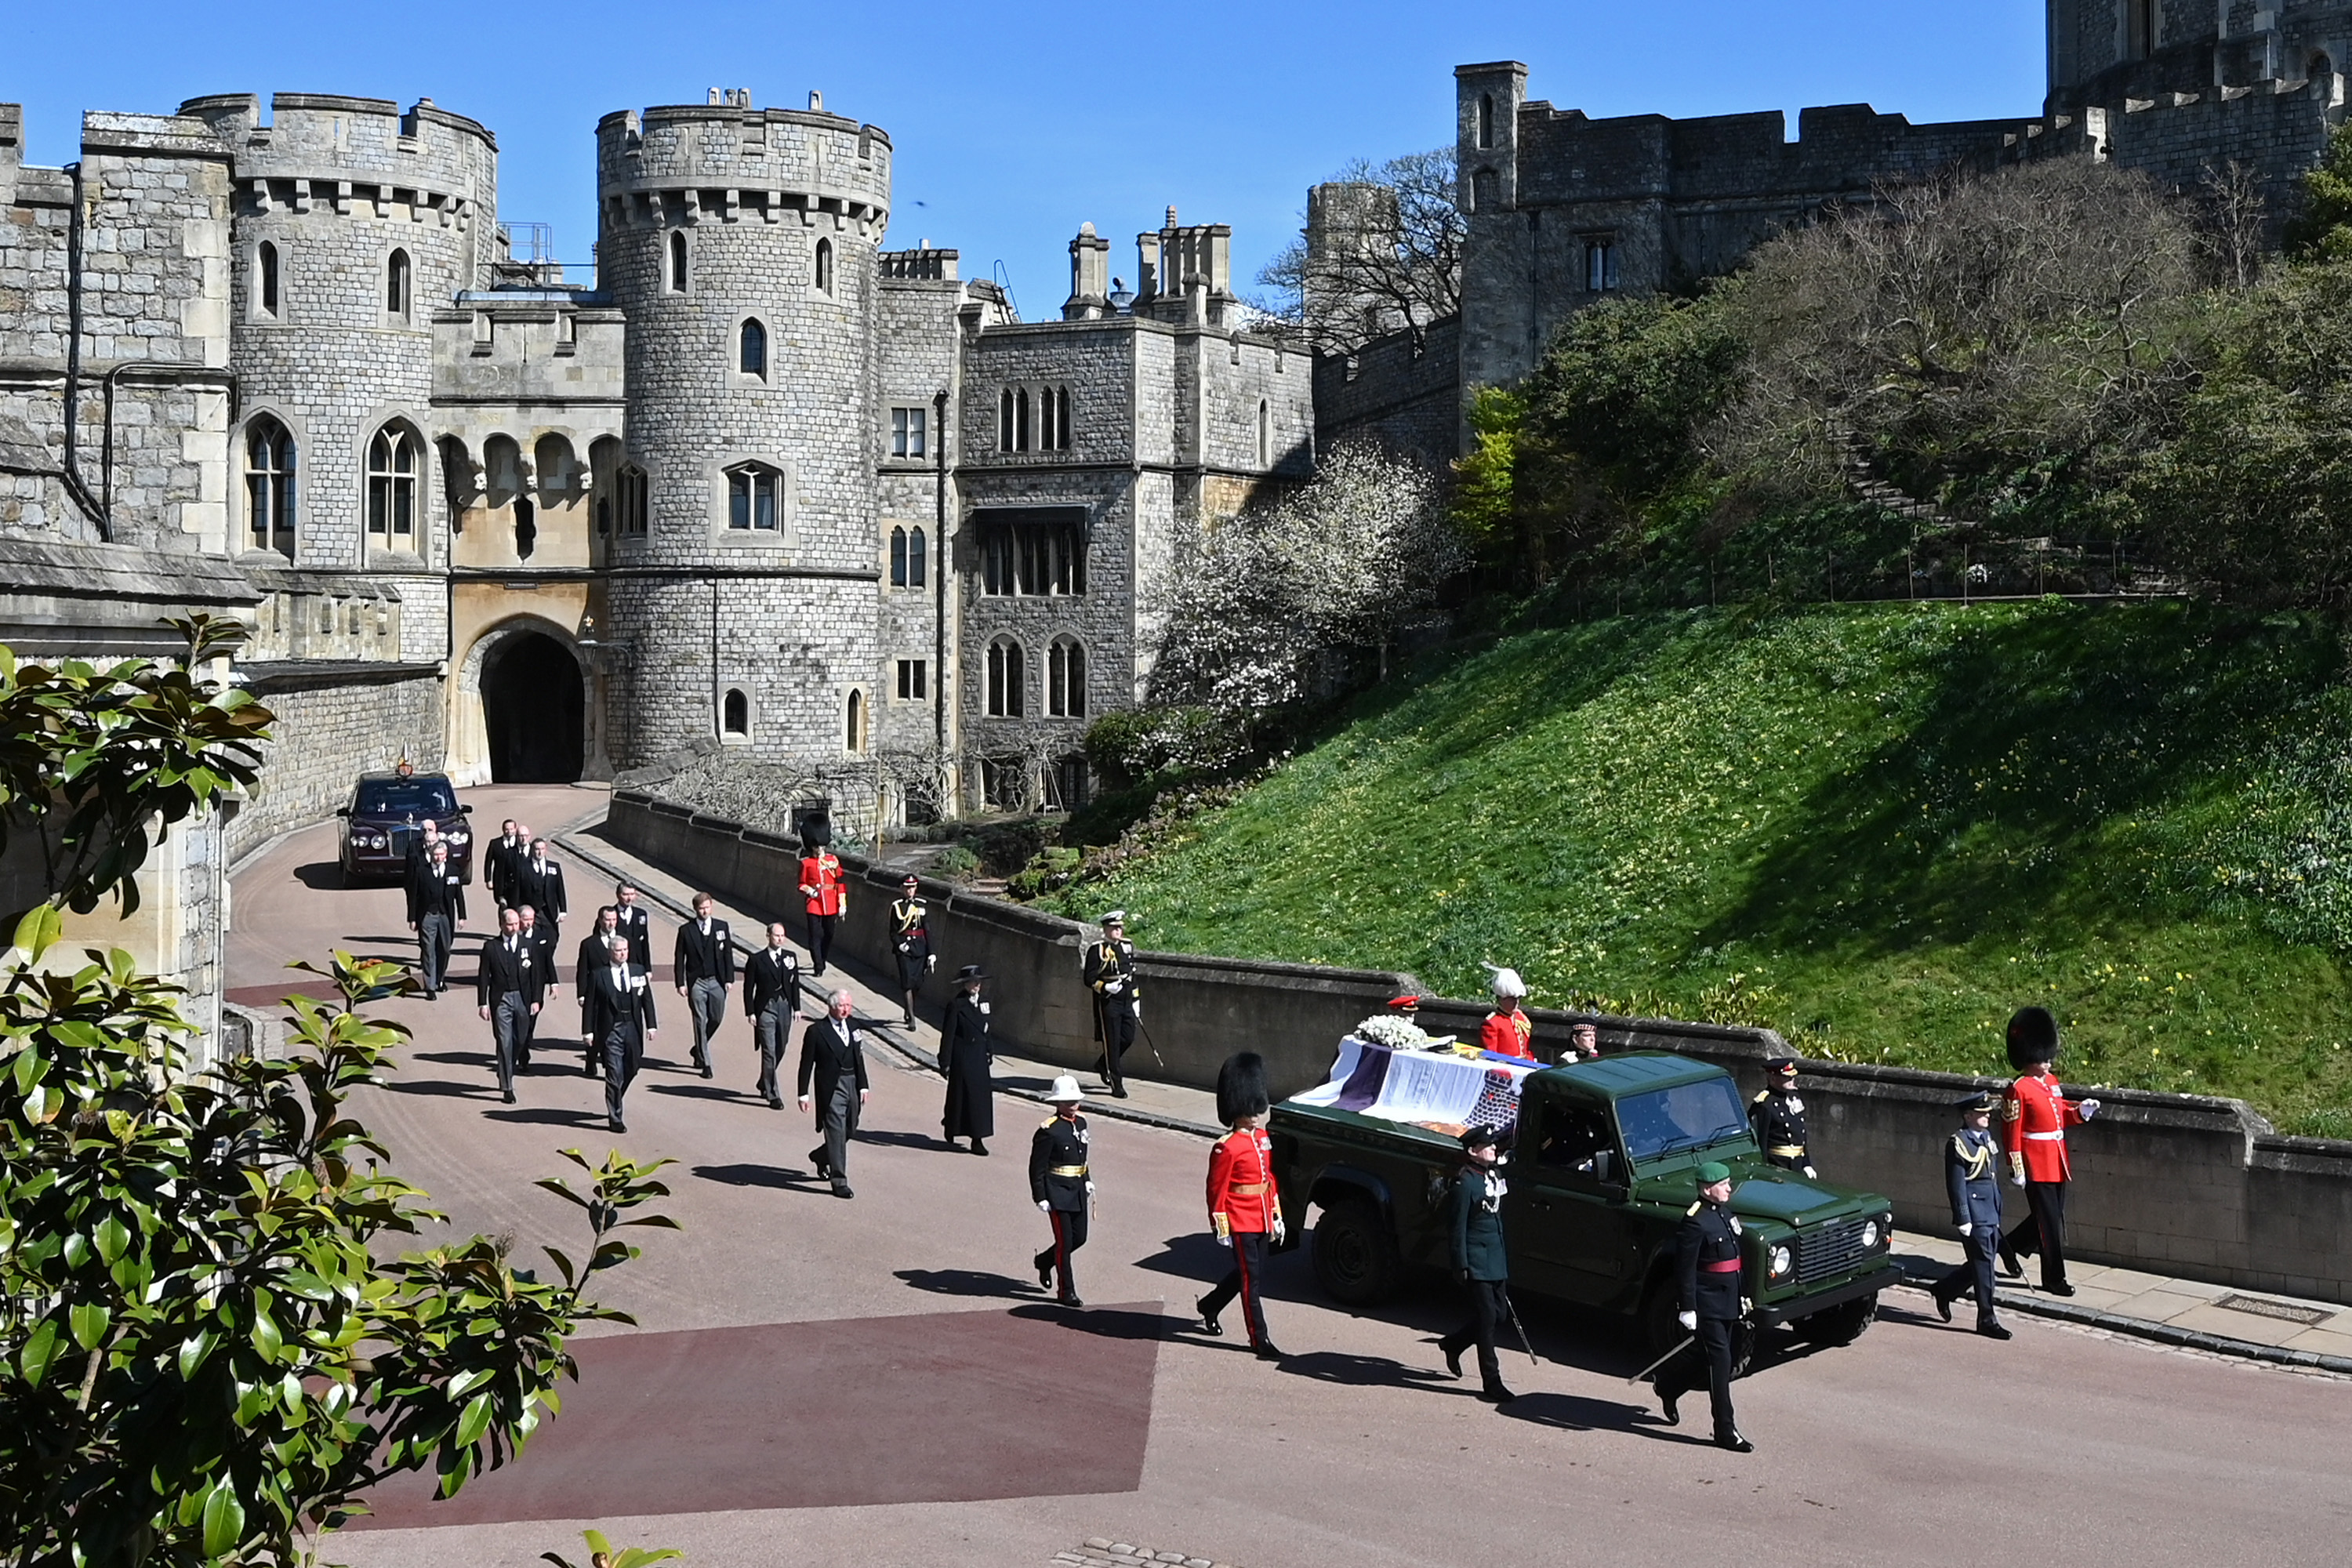 Prince Philip's funeral